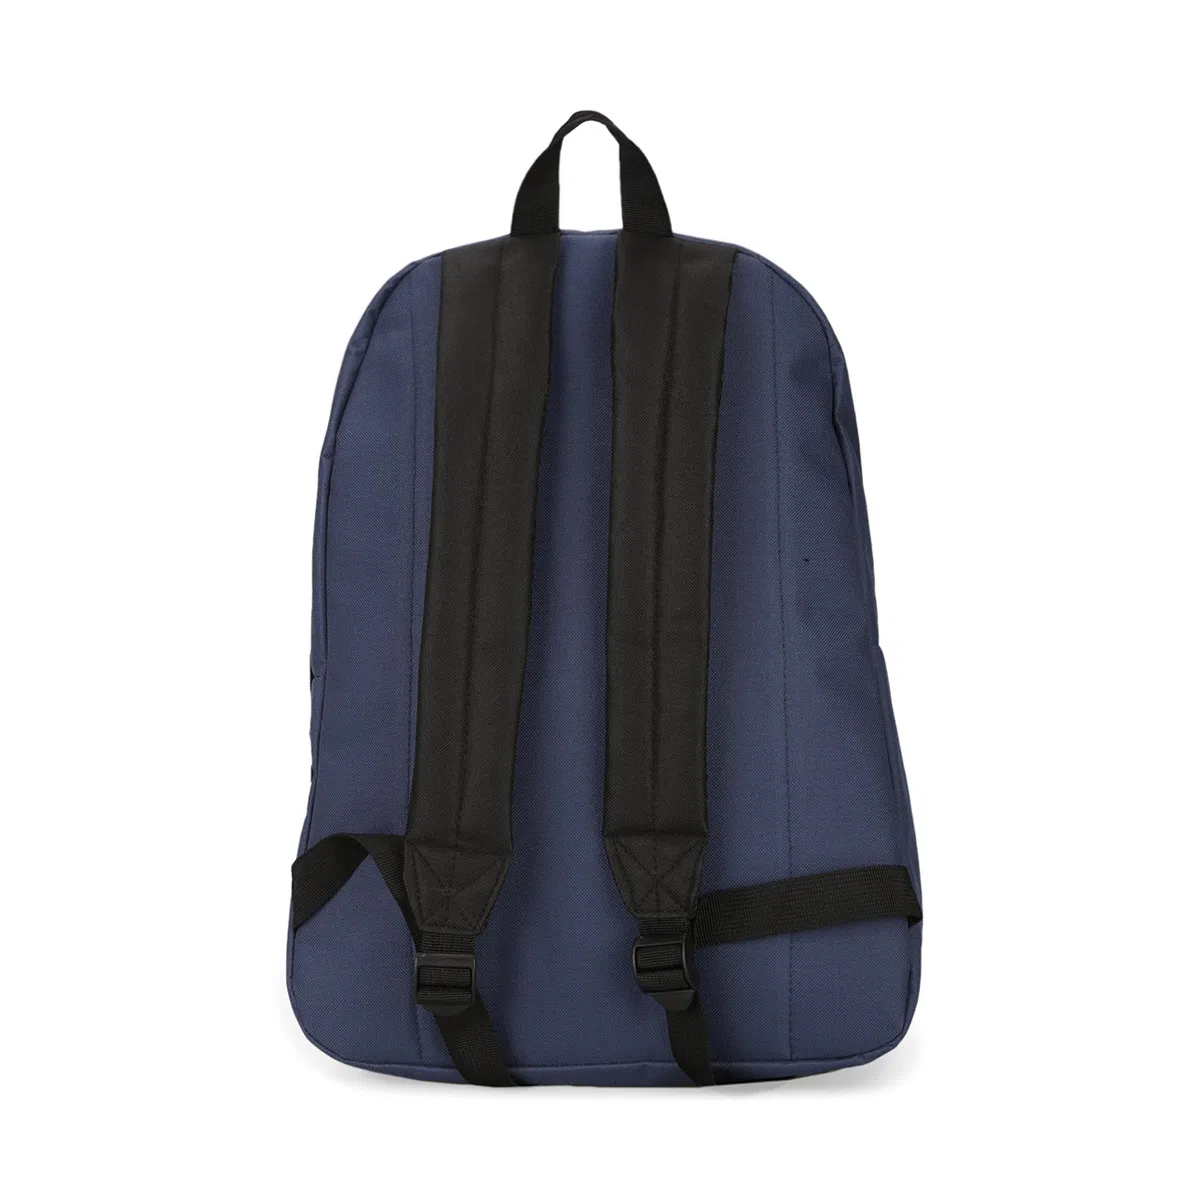 Mochila Topper Heritage,  image number null